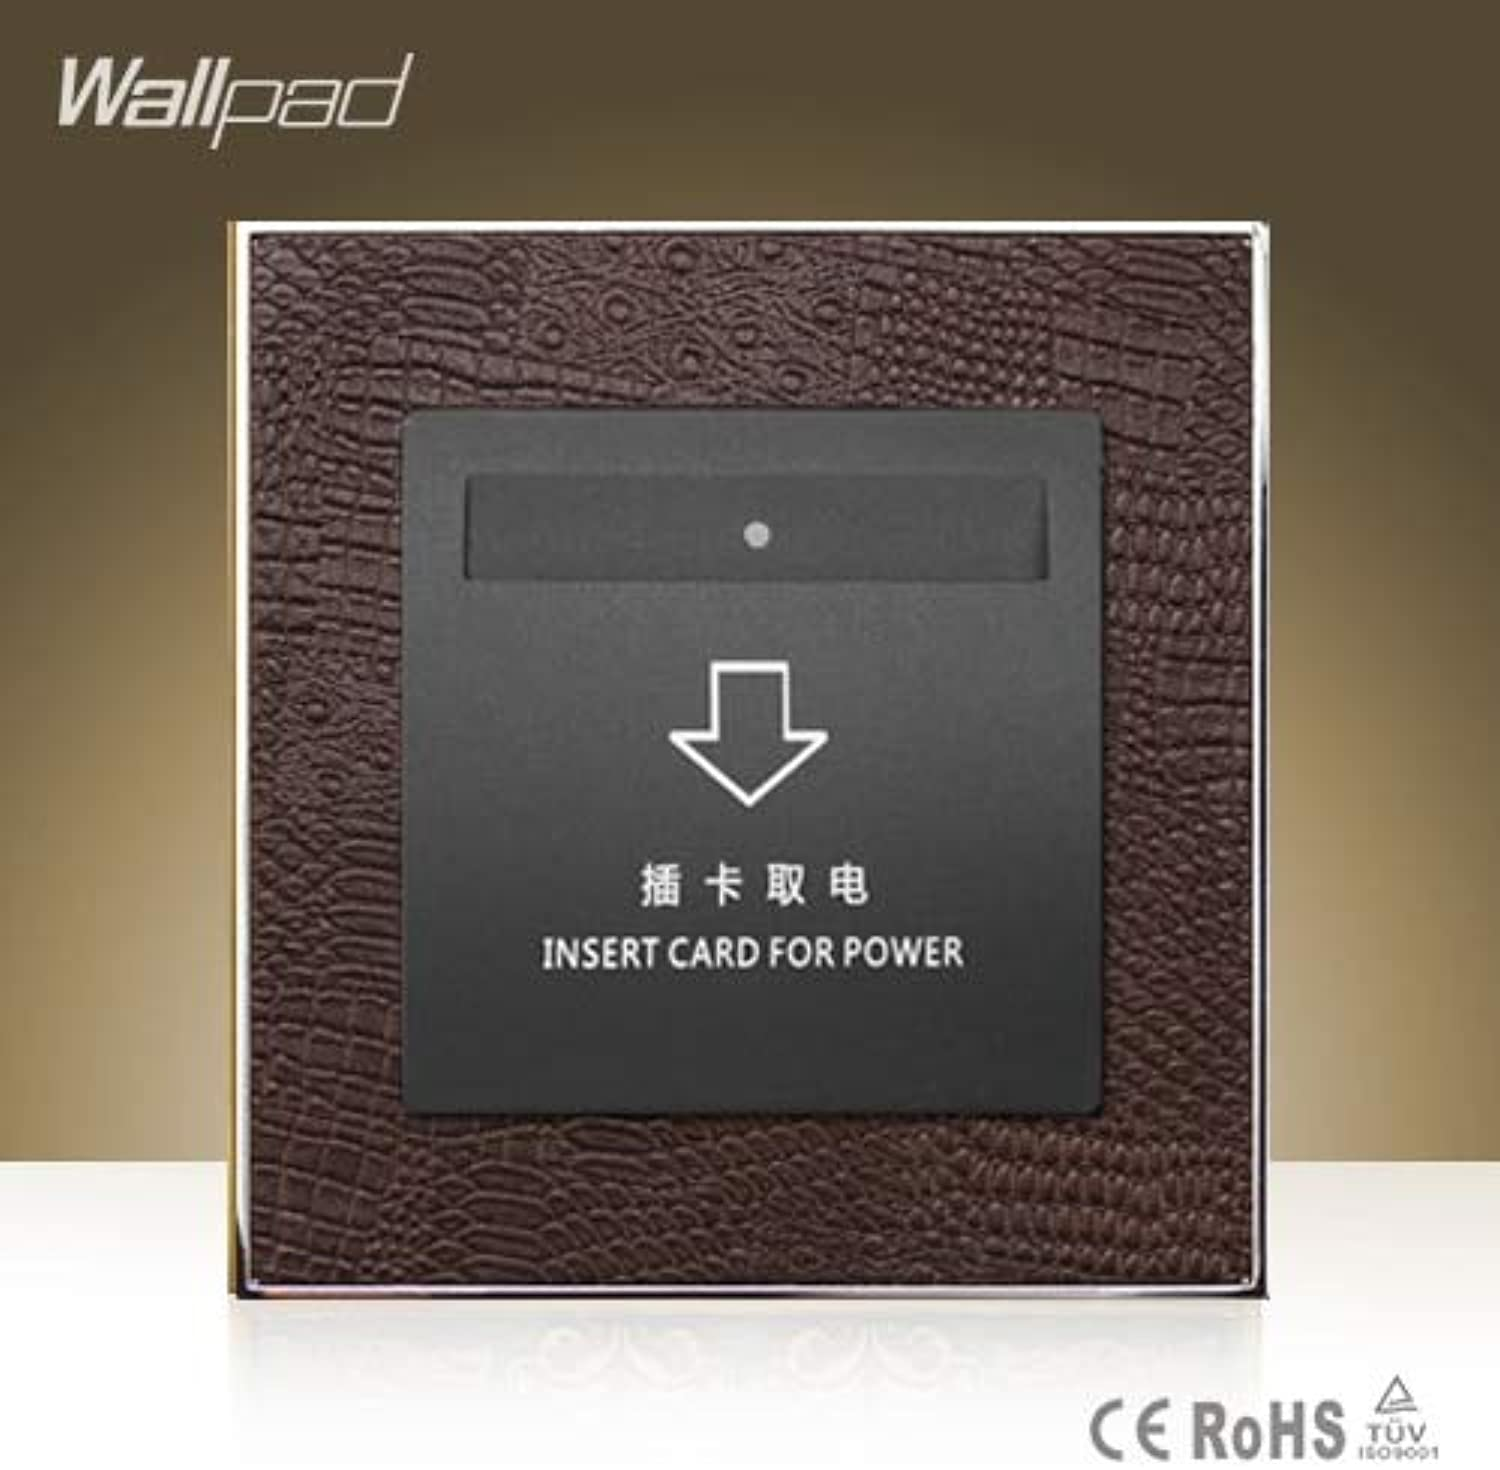 Hot Sale Wallpad Hotel Inserd Card Socket Goats Brown Leather Modular 40A Low Frequency Sensor Card Switch